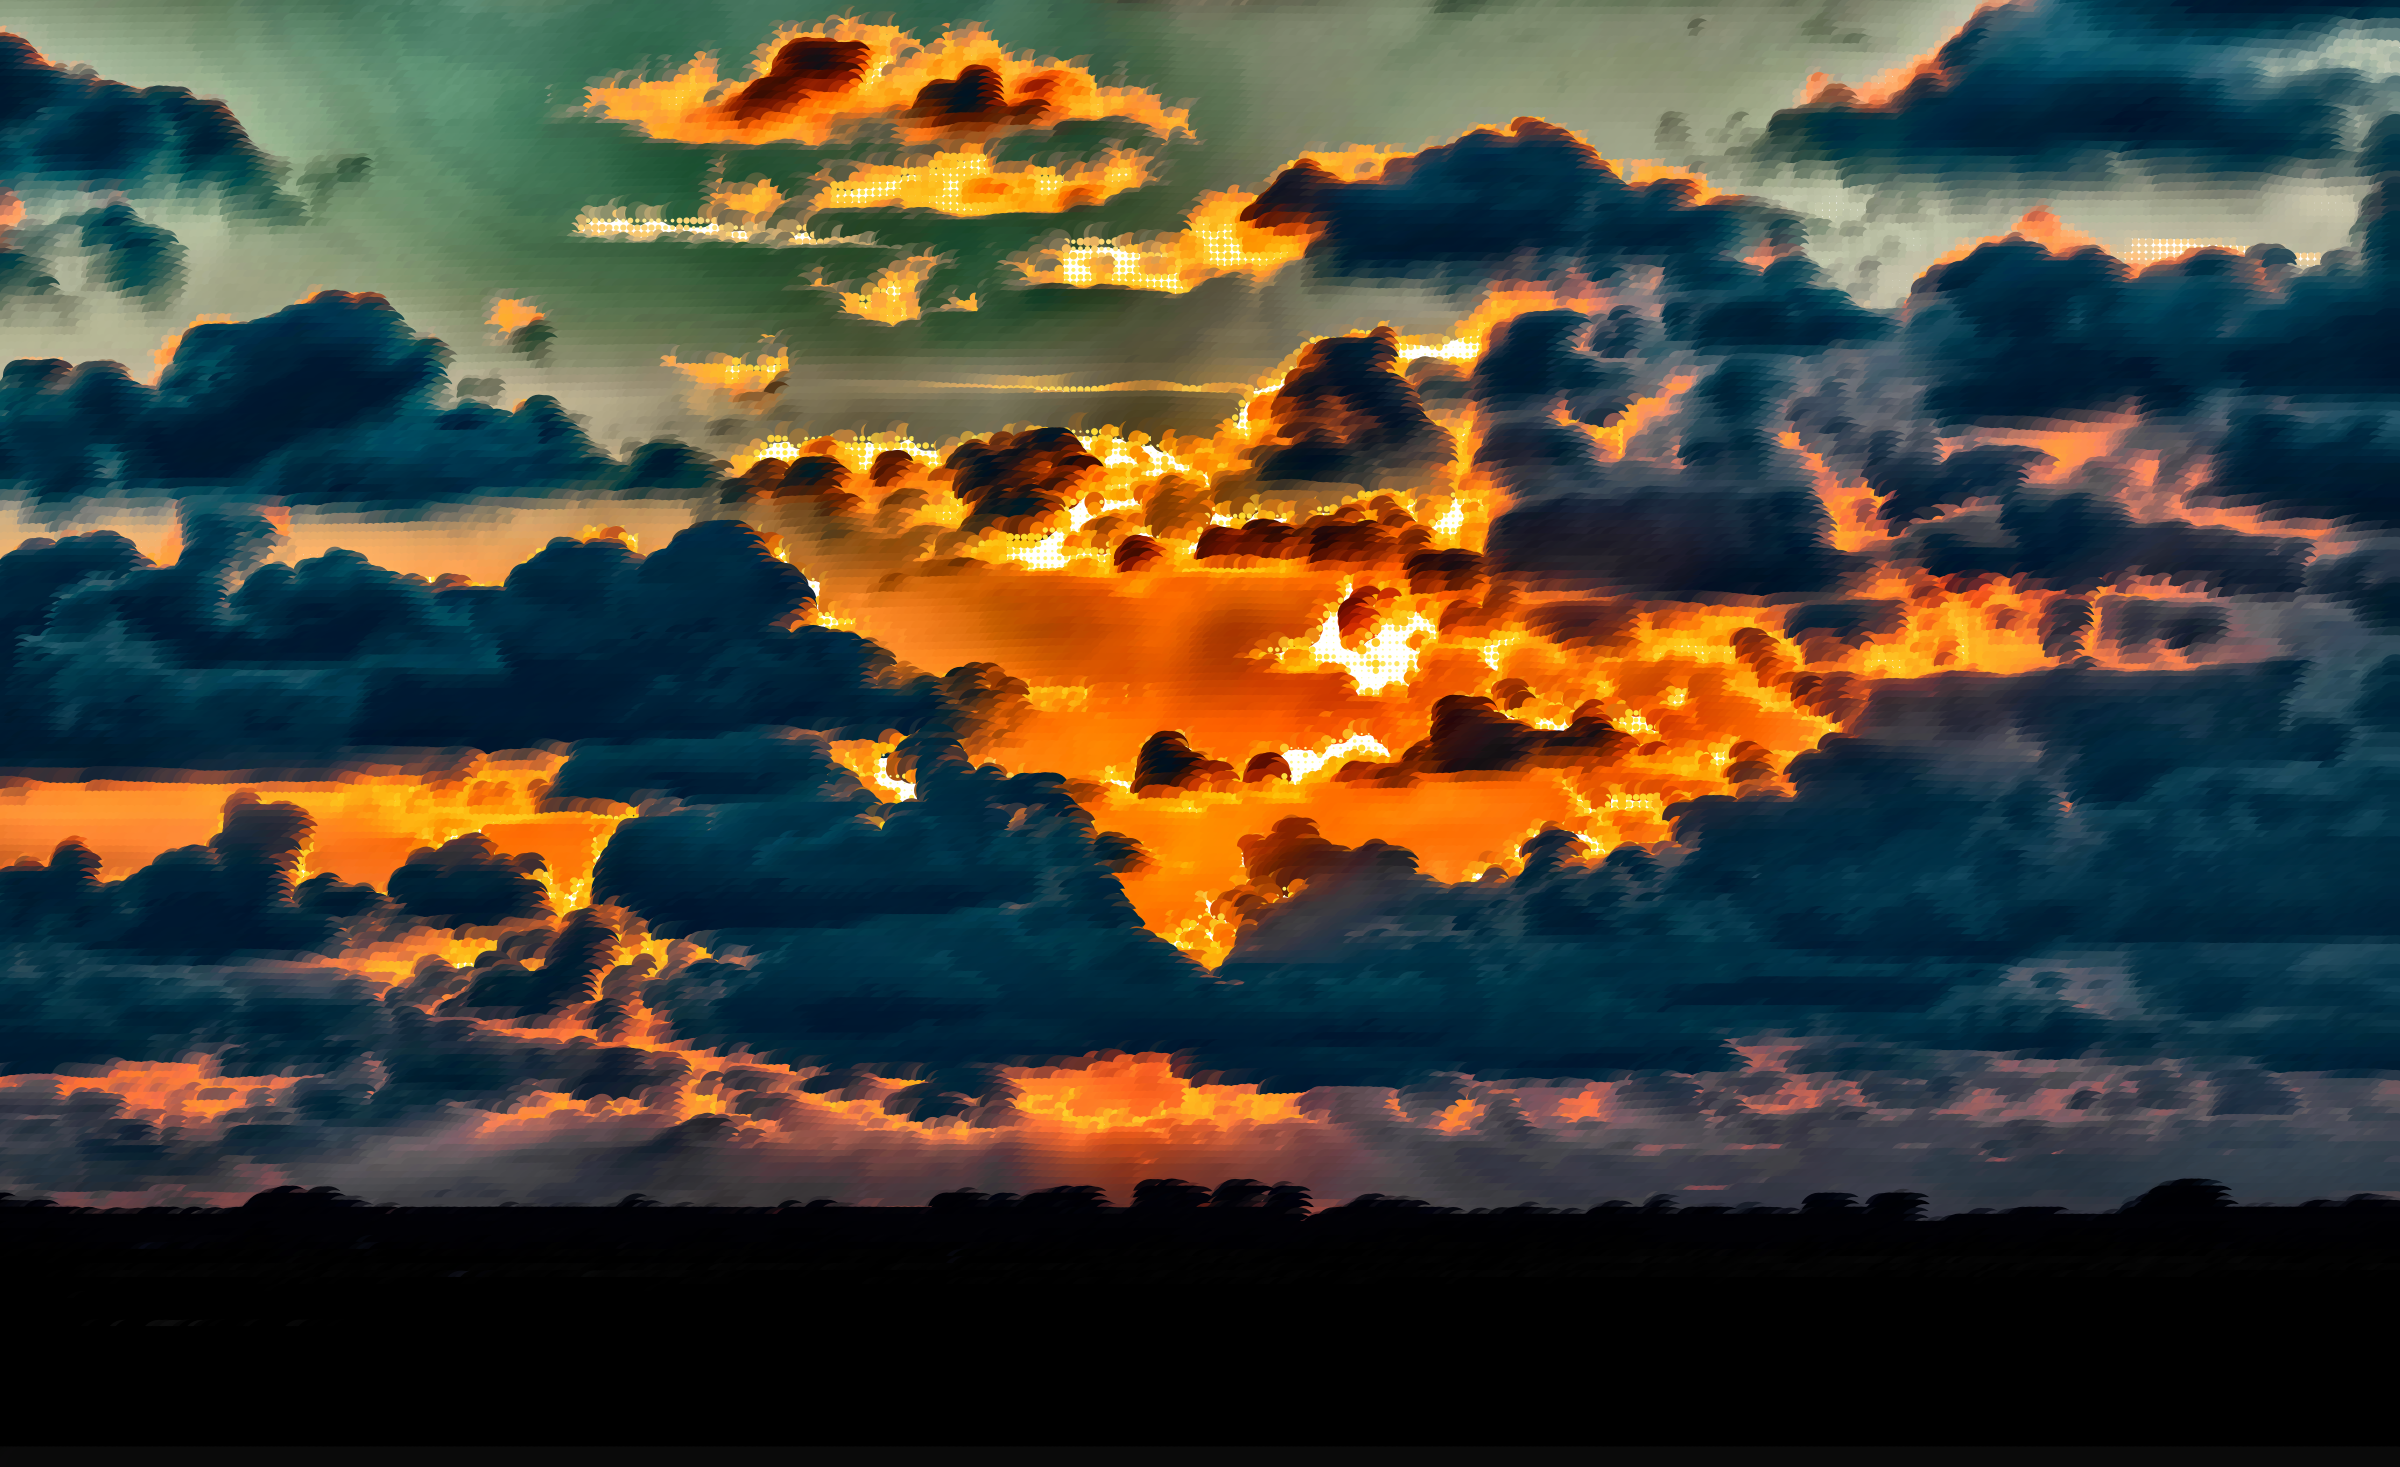 Surreal Evening Sky by GDJ